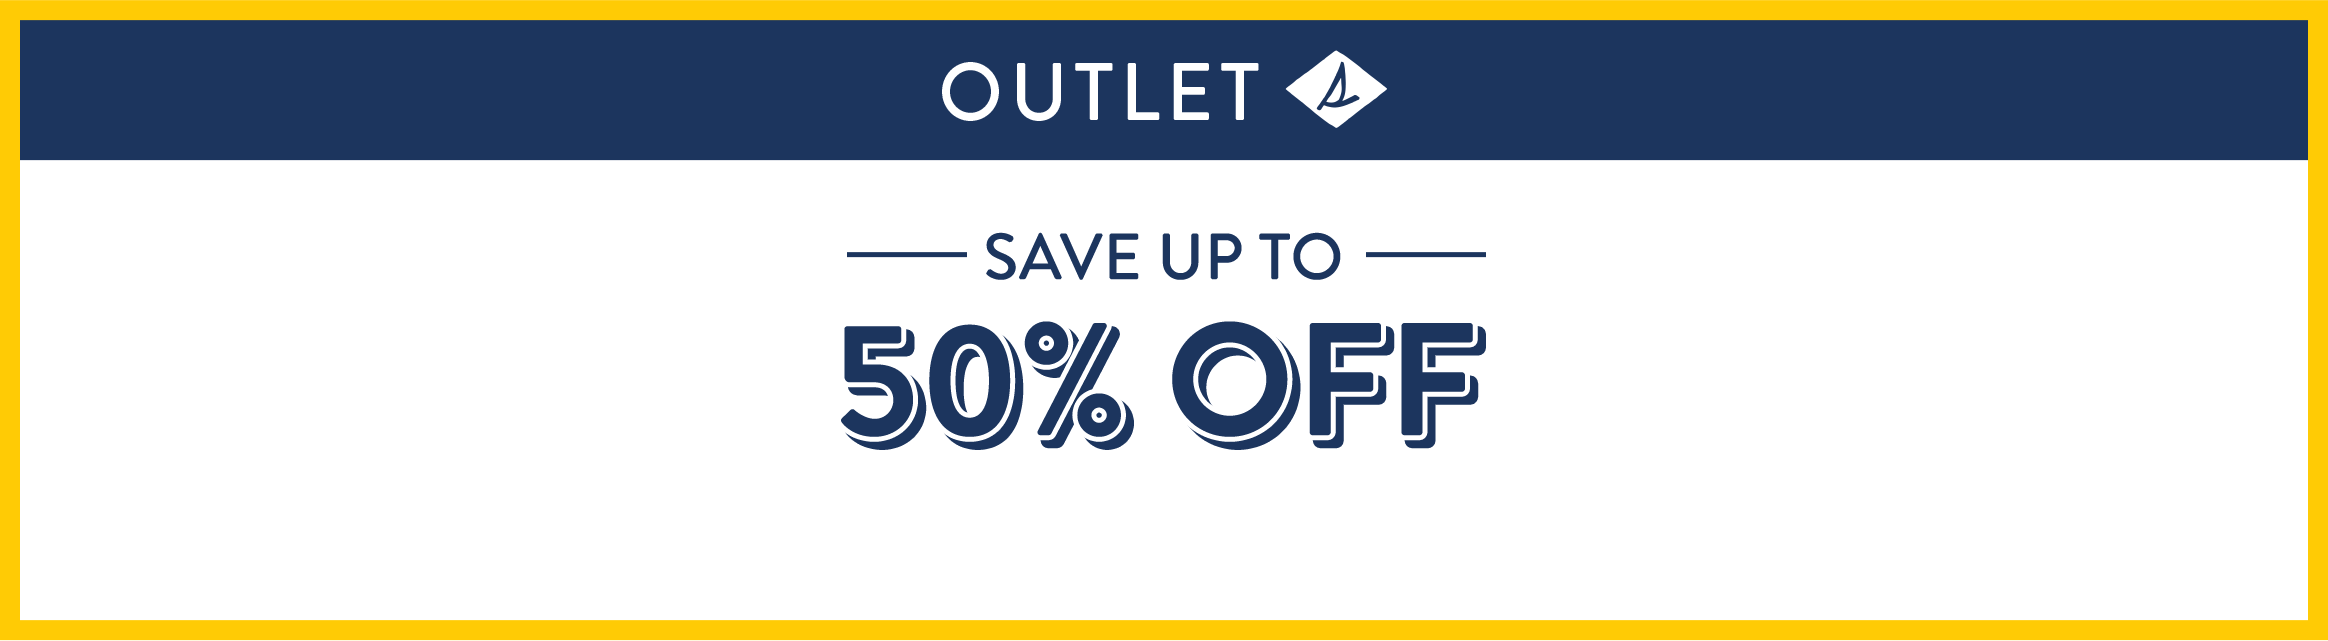 Save up to 50% Off